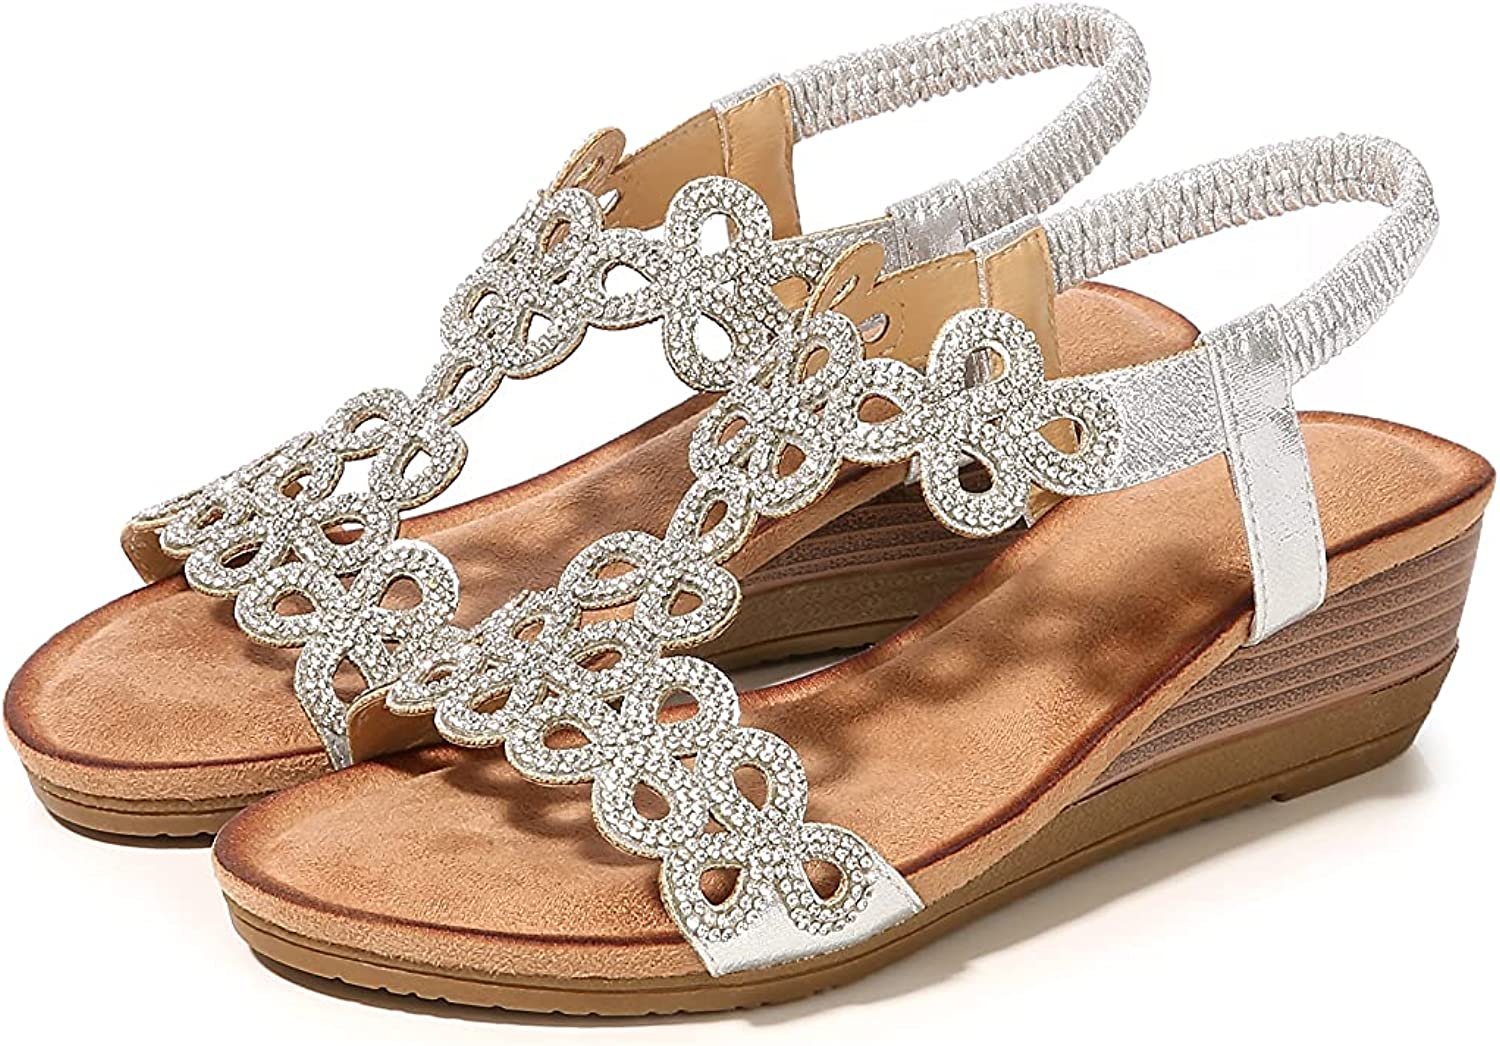 STMAHER Summer Wedge Sandals for Women Casual Elastic Band Rhinestone Breathable Cutout Platform Dress Sandals Comfy Walking Beach Shoes Size 5-12 US